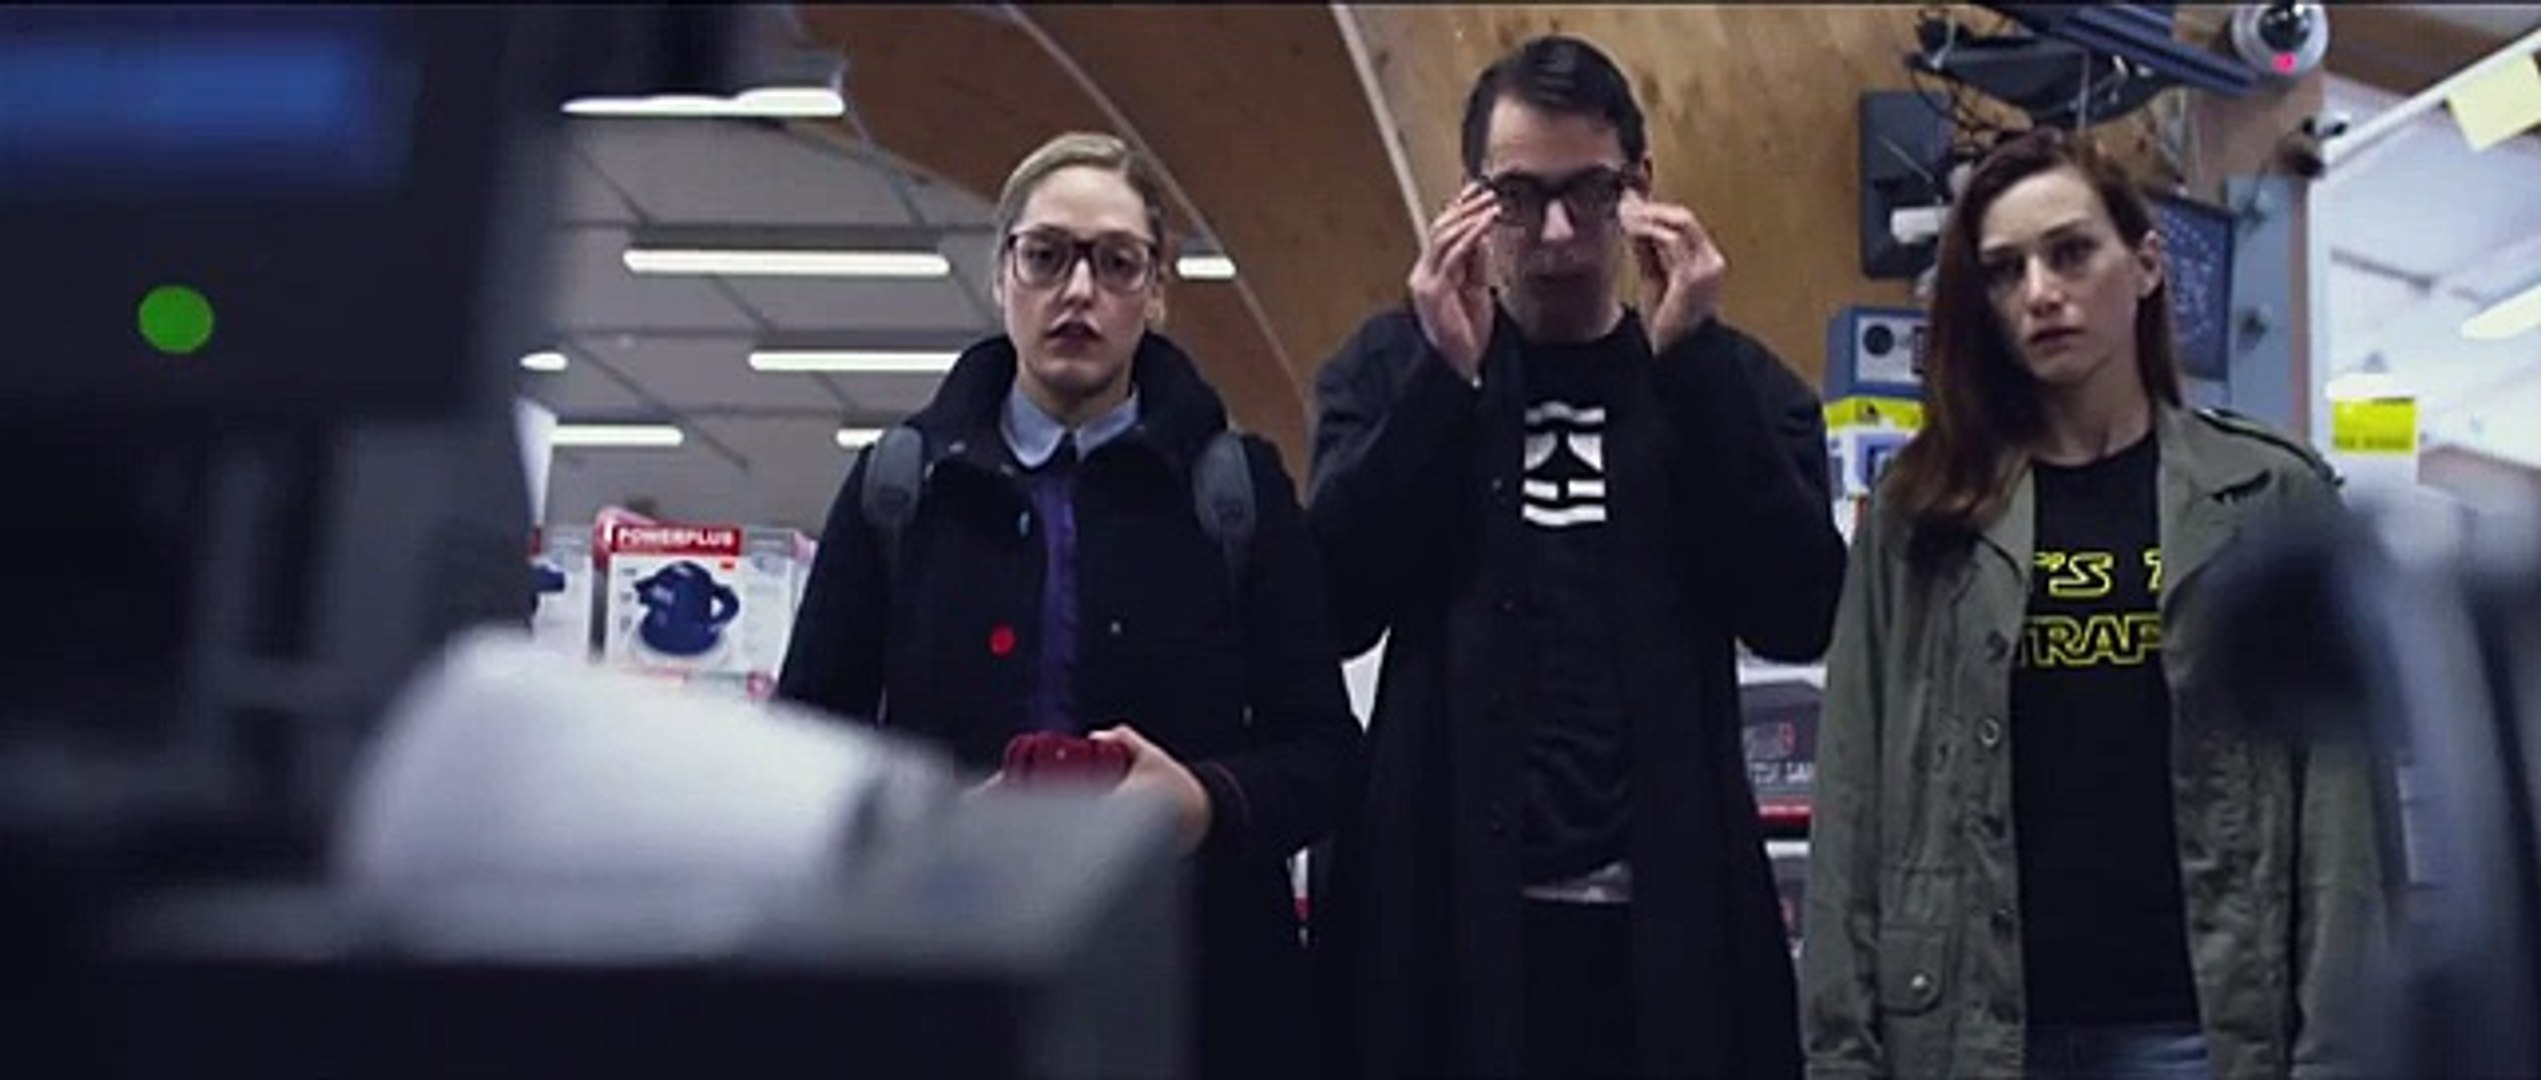 Dead Snow 2 - Red vs. Dead Official US Release Trailer 1 (2014) - Nazi Zombie Sequel HDnew action mo